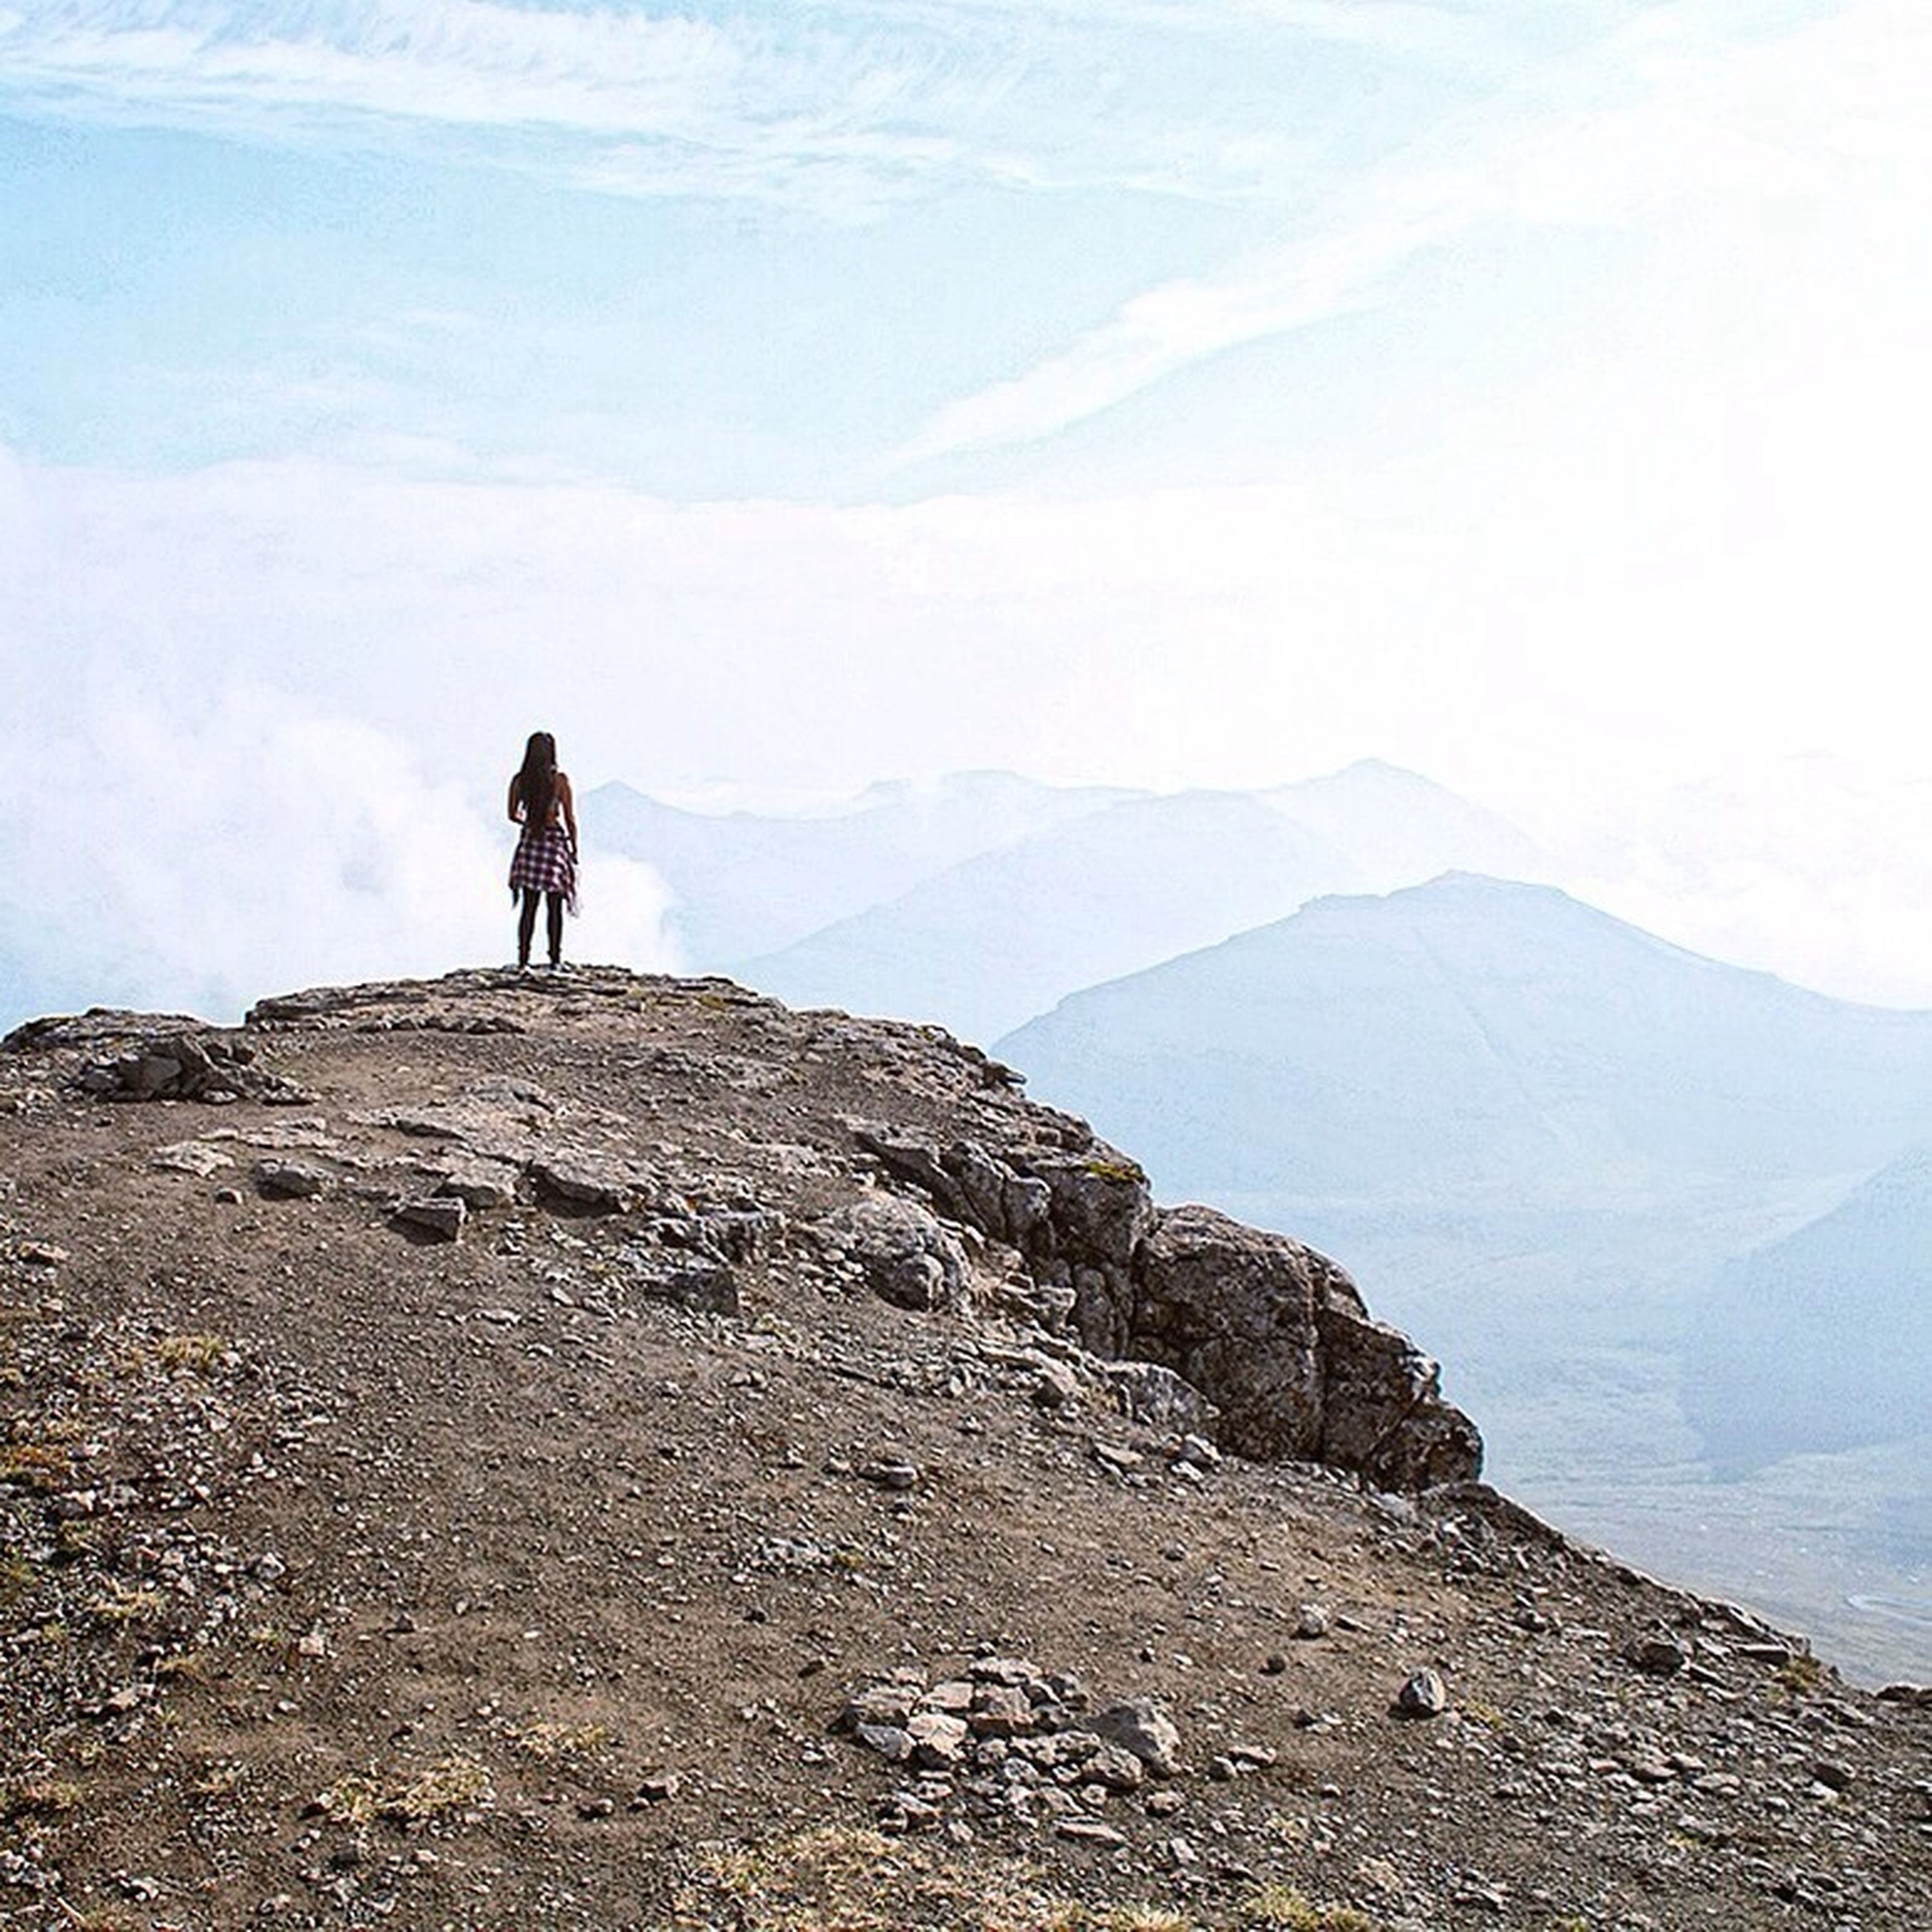 lifestyles, leisure activity, mountain, men, standing, full length, sky, hiking, tranquility, tranquil scene, rear view, scenics, nature, beauty in nature, rock - object, looking at view, mountain range, landscape